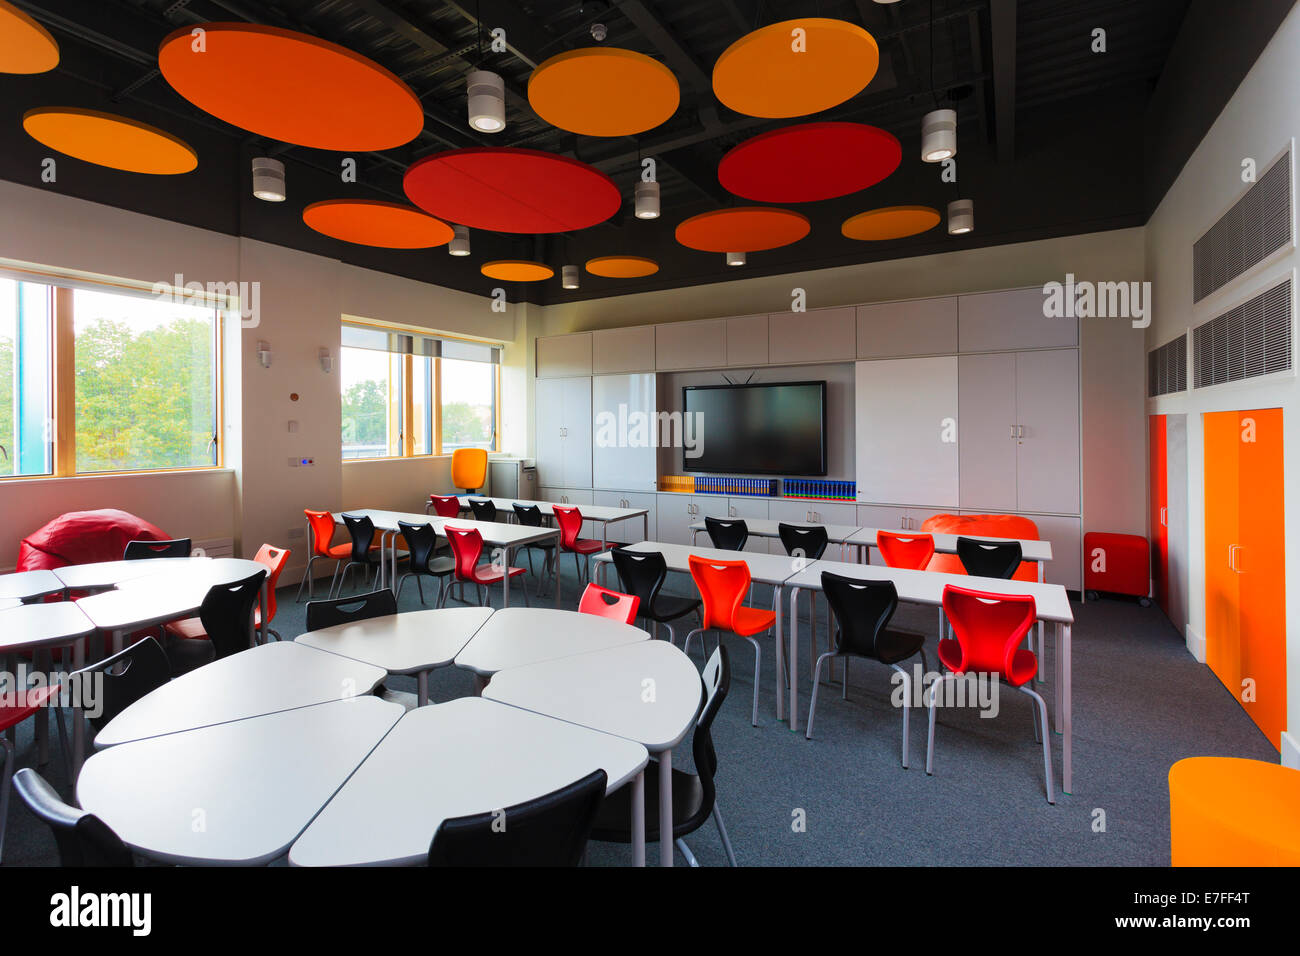 Unoccupied school classroom with colourful acoustic ceiling discs. - Stock Image